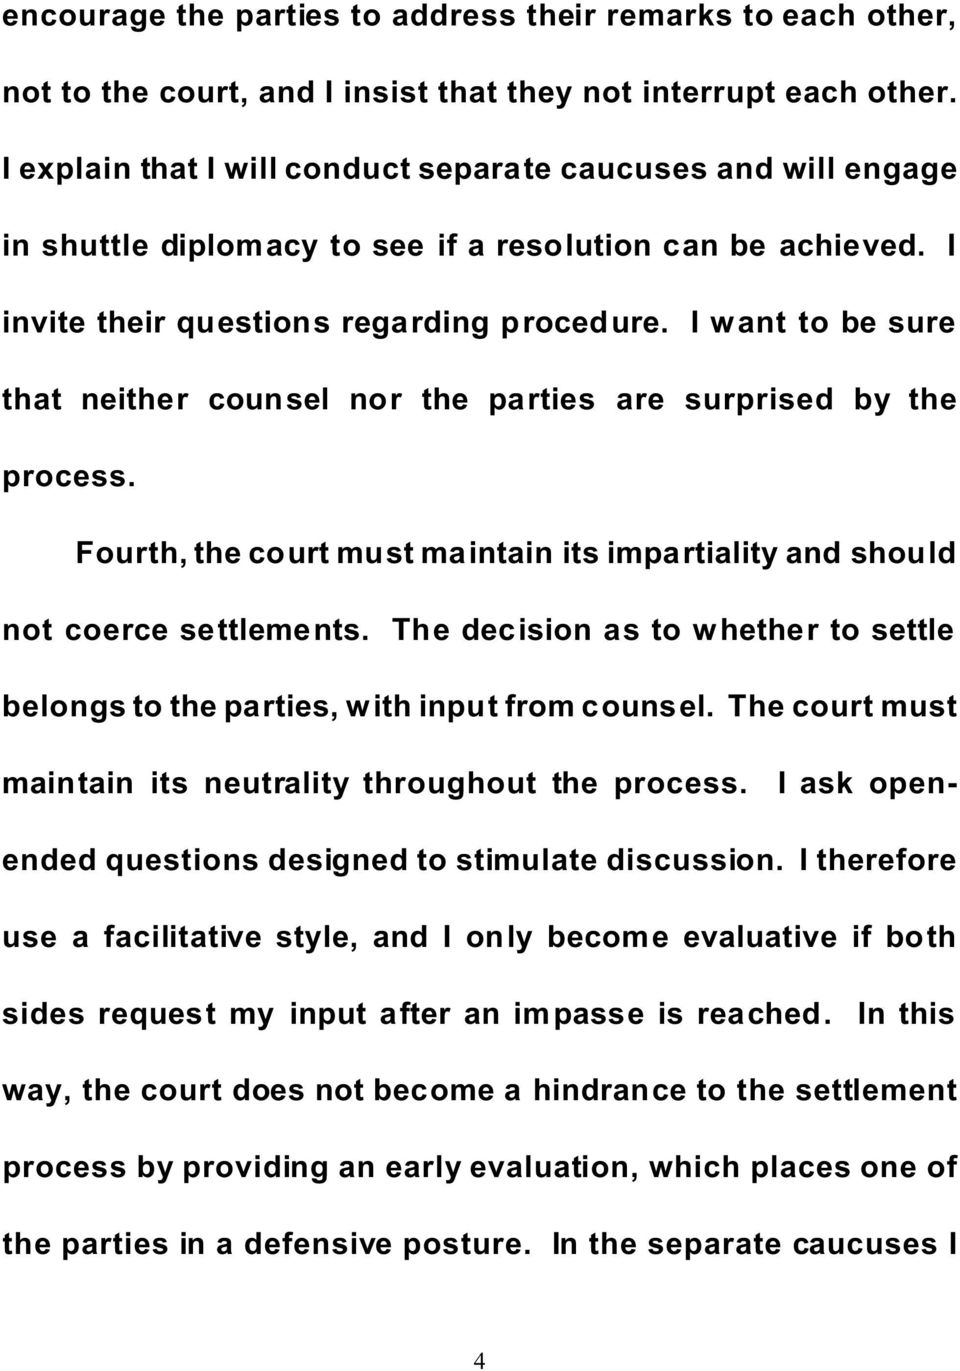 I want to be sure that neither counsel nor the parties are surprised by the process. Fourth, the court must maintain its impartiality and should not coerce settlements.